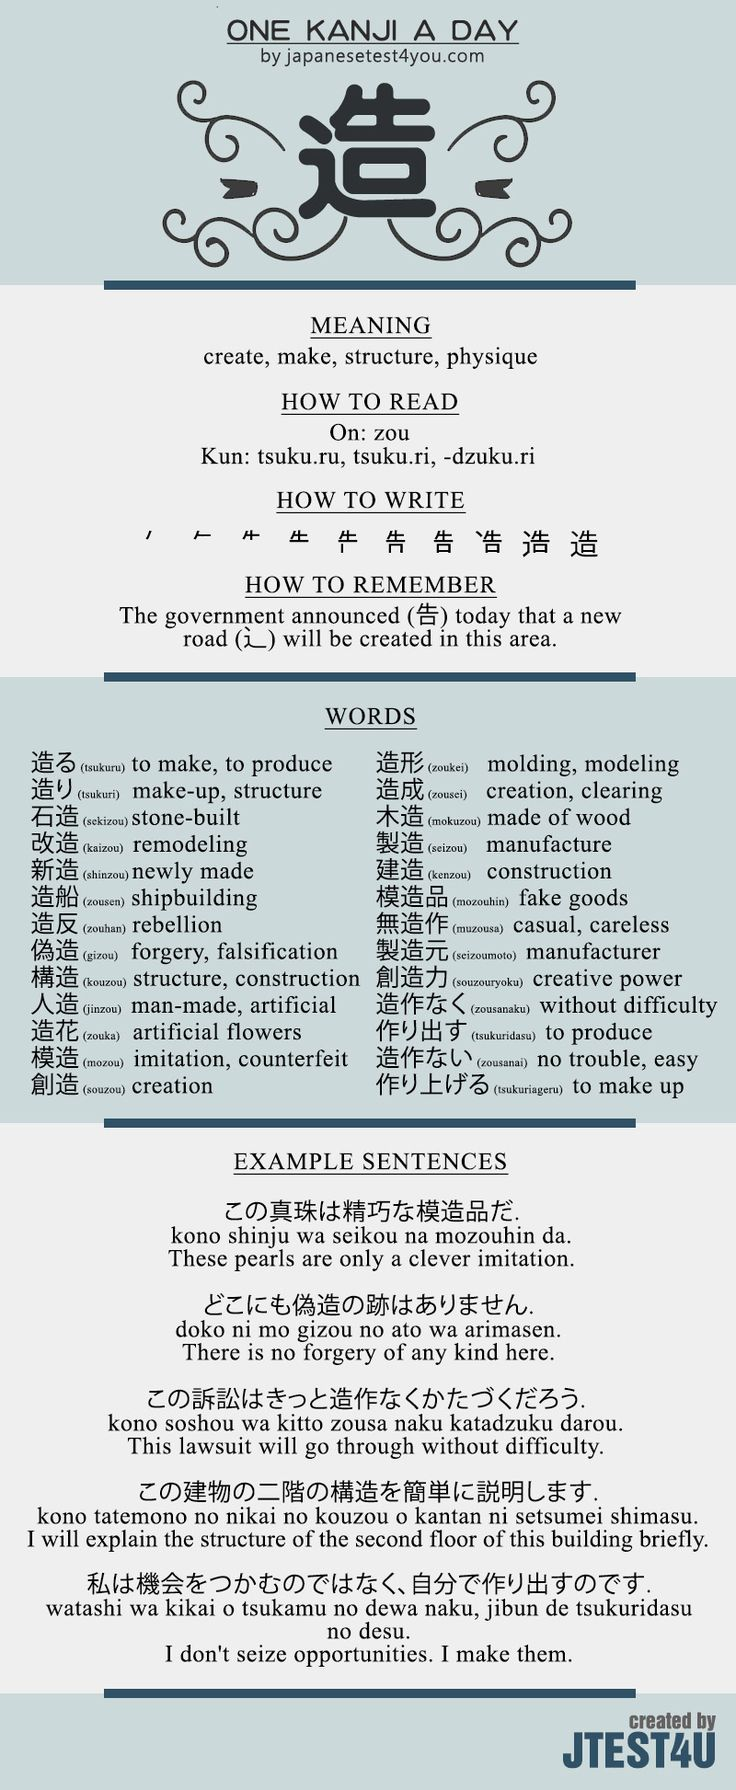 Learn one Kanji a day with infographic - 造 (zou): http://japanesetest4you.com/learn-one-kanji-a-day-with-infographic-%e9%80%a0-zou/